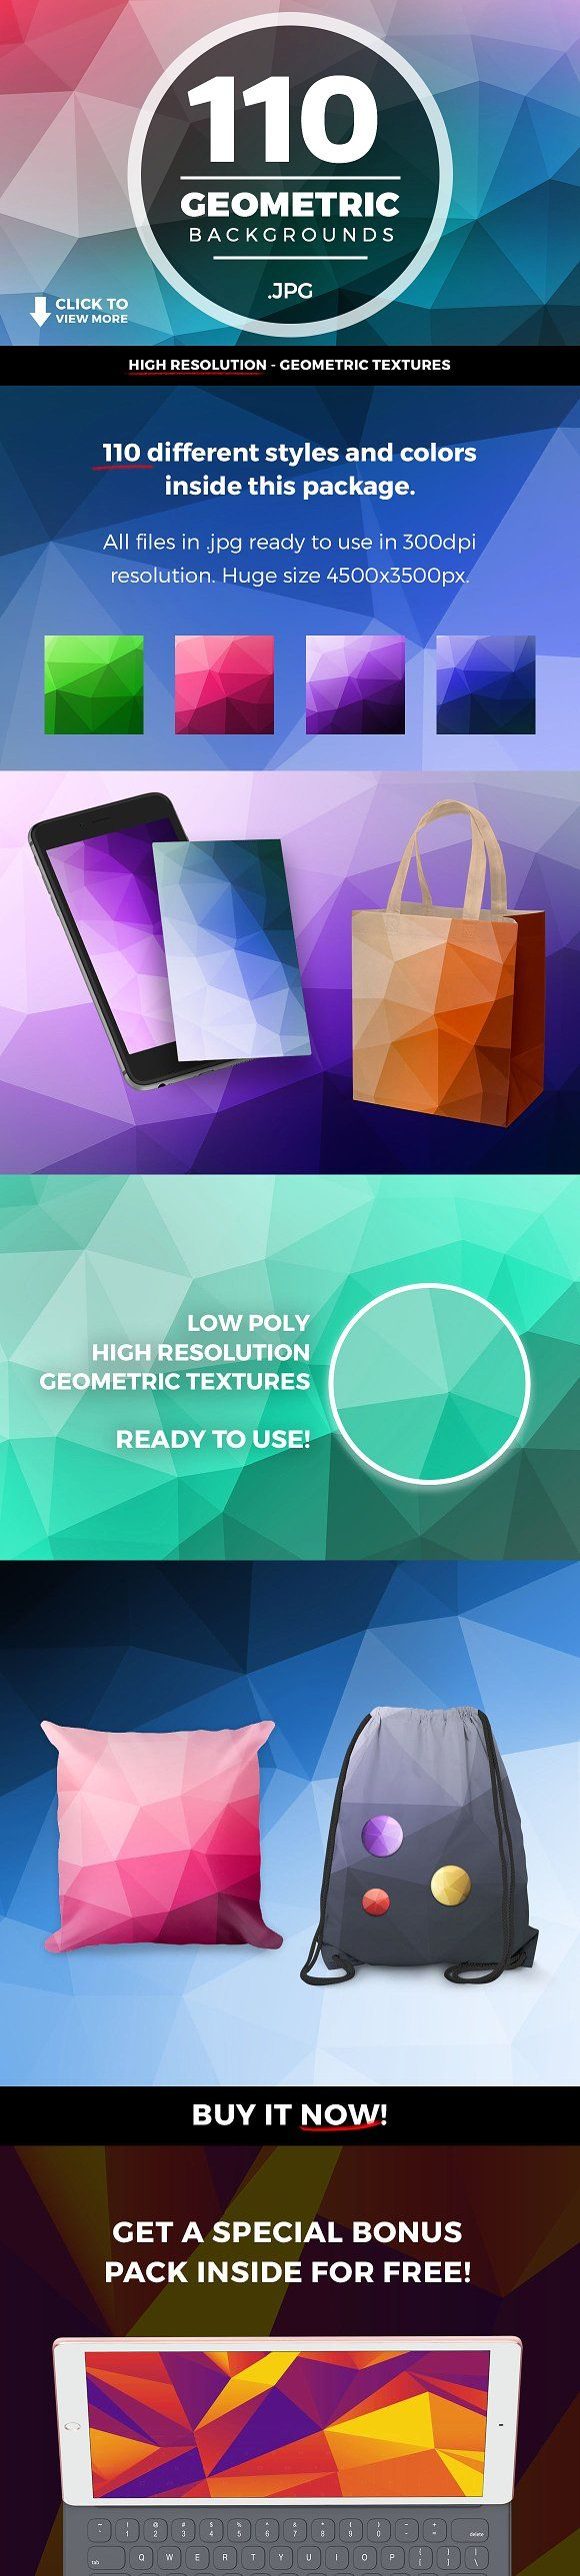 Geometric Triangle Backgrounds 110+ by caiocall on @creativemarket